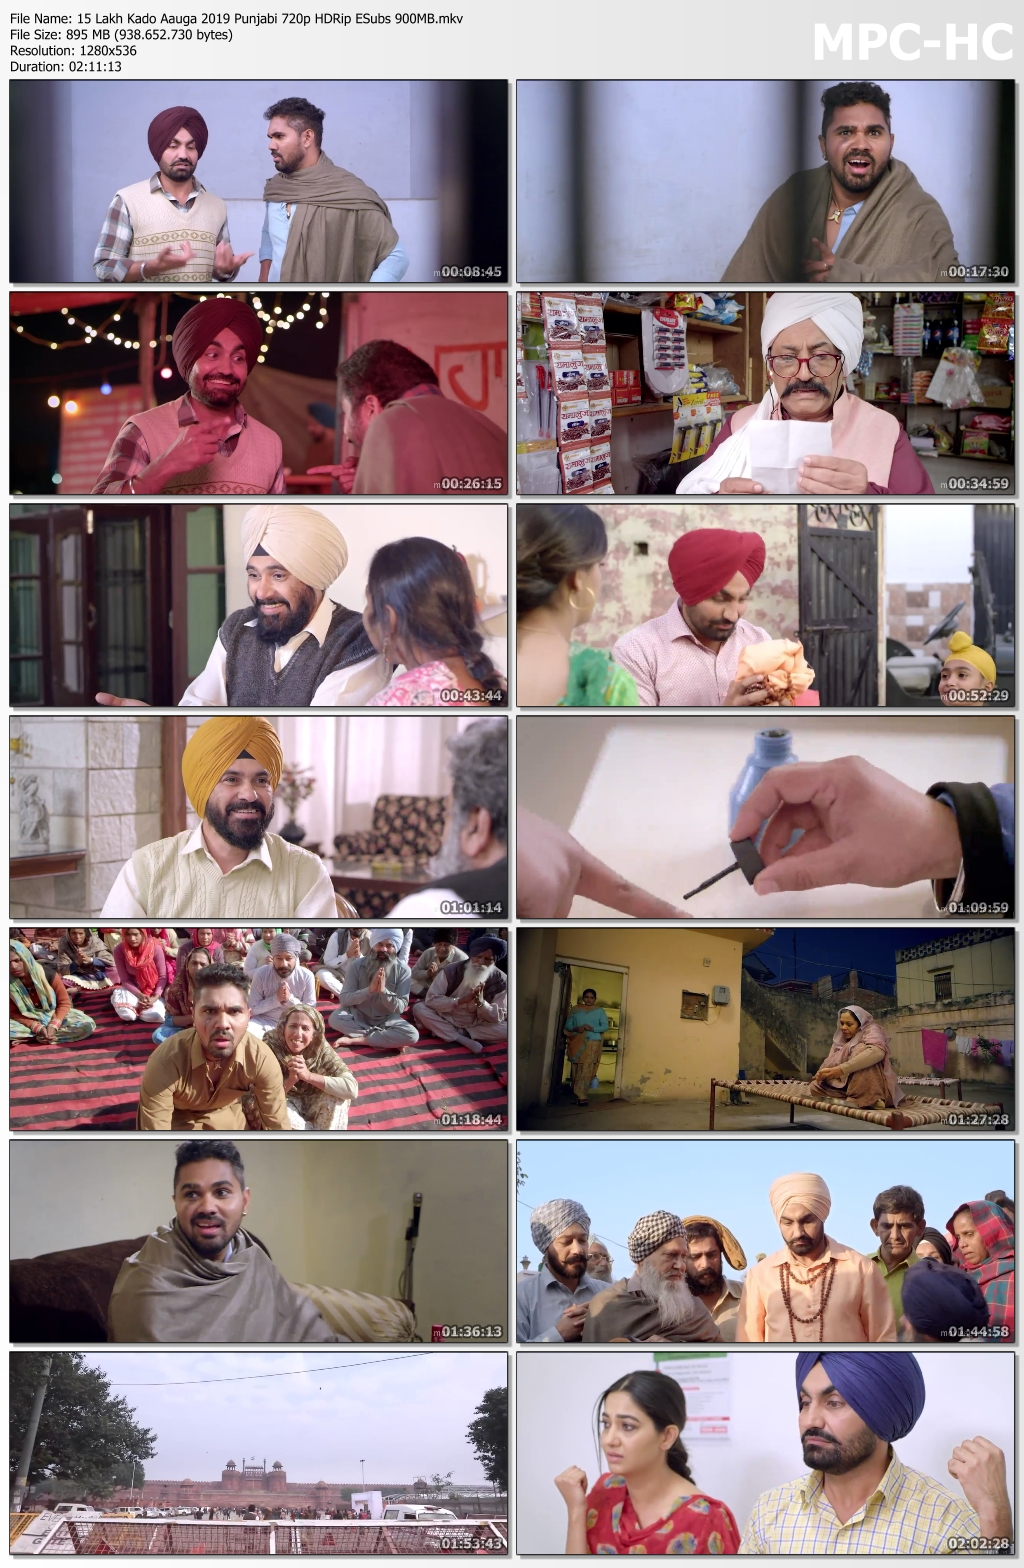 15-Lakh-Kado-Aauga-2019-Punjabi-720p-HDRip-ESubs-900-MB-mkv-thumbs